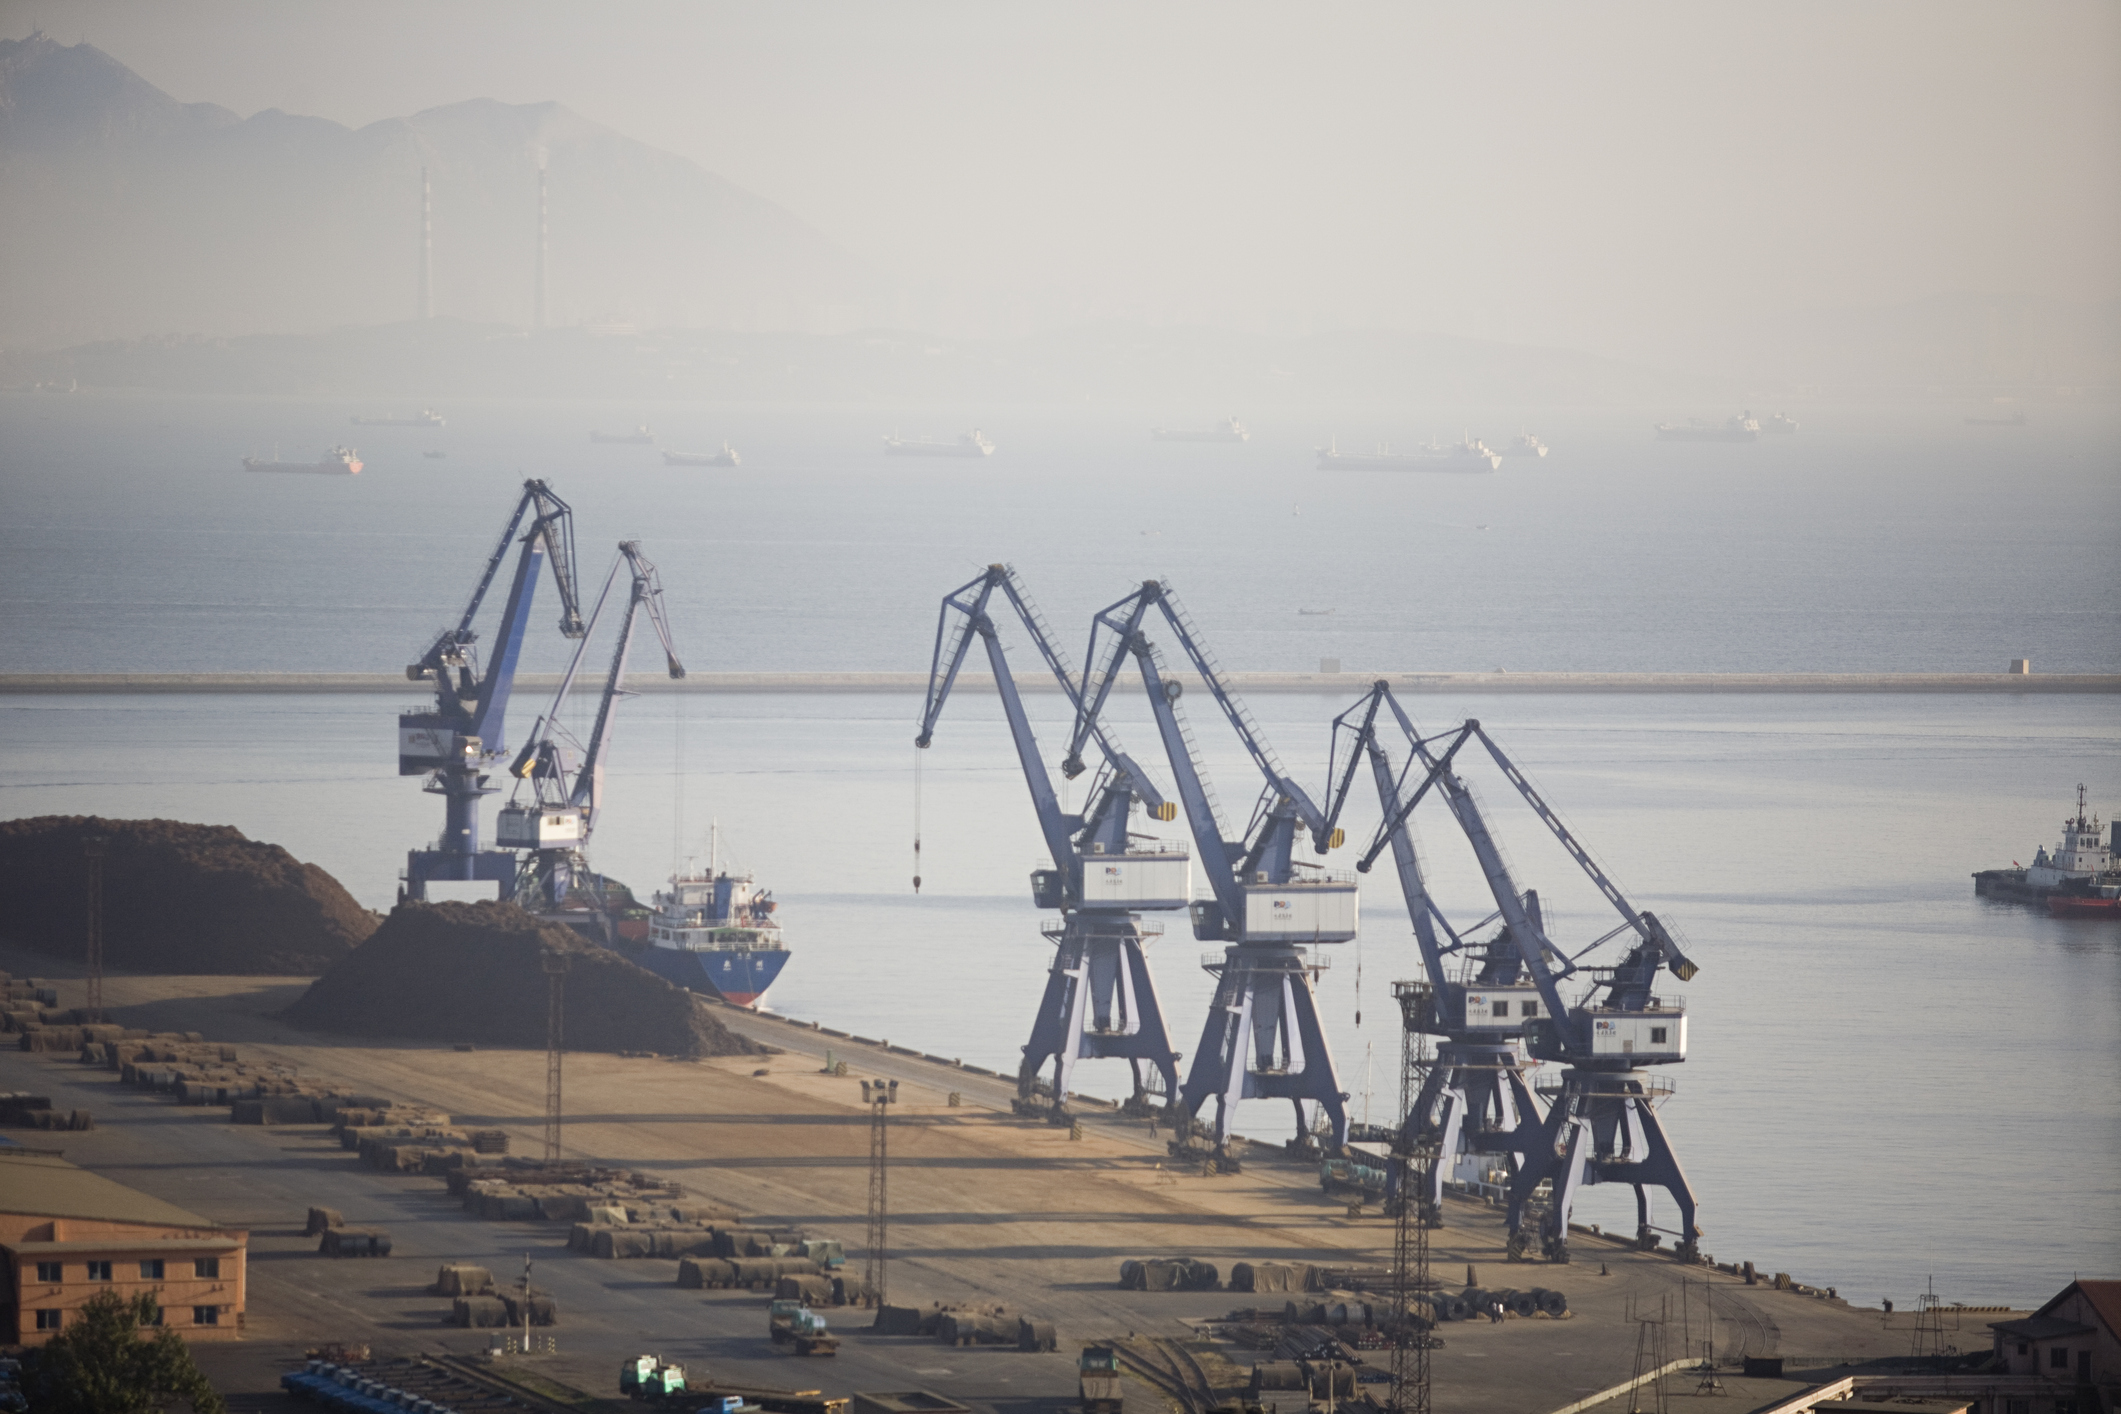 cargo cranes on The Port of Dalian